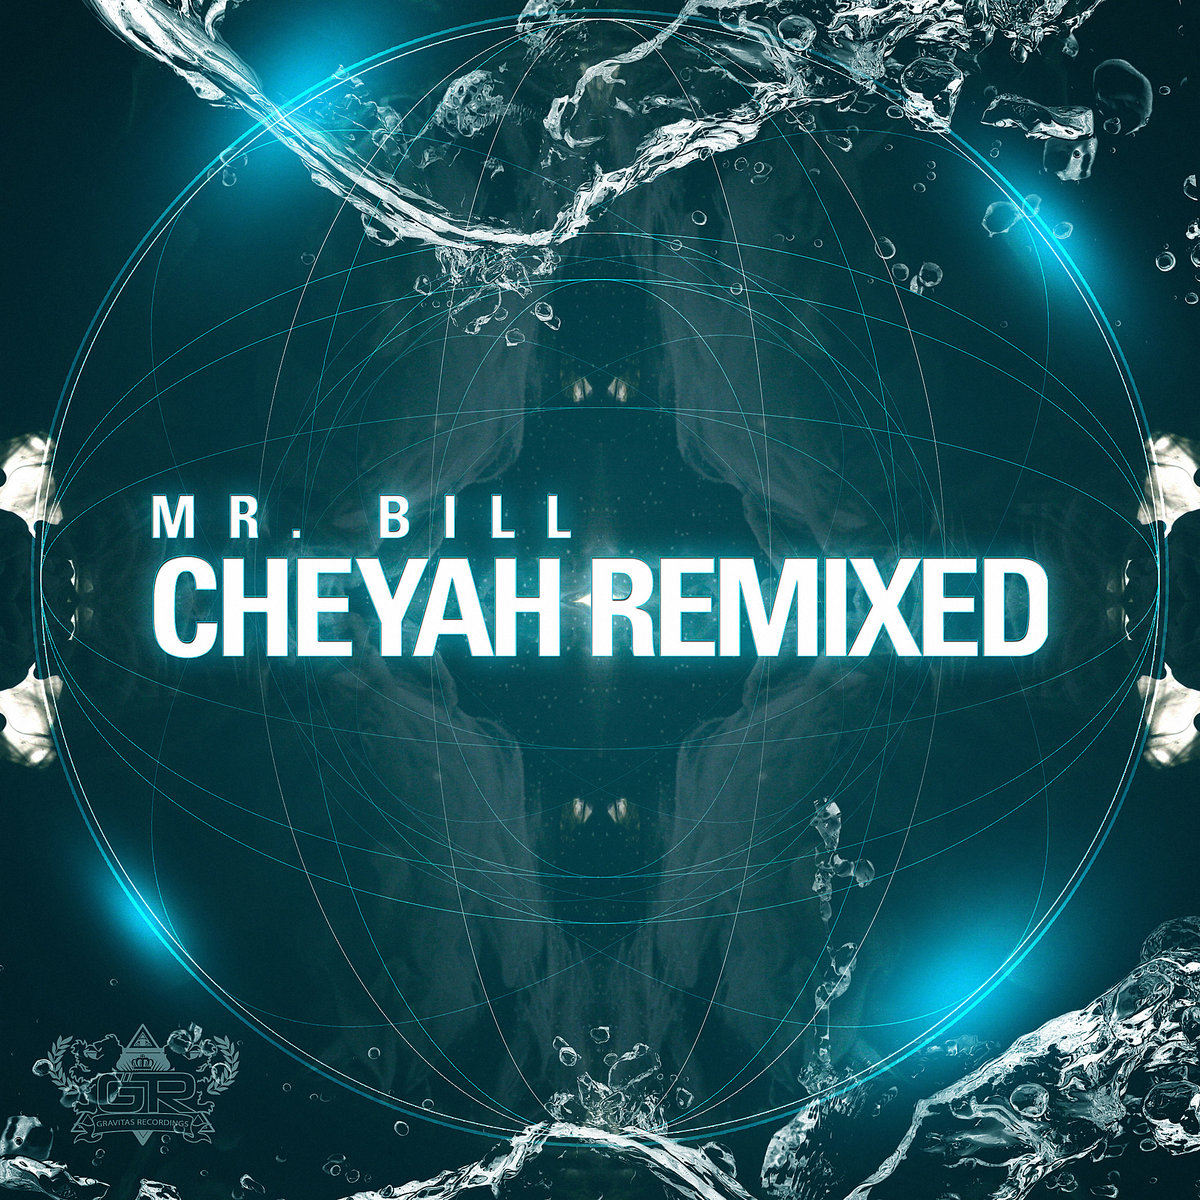 Mr. Bill - Cheyah (Haywyre Remix) @ 'Cheyah Remixed' album (australia, idm)